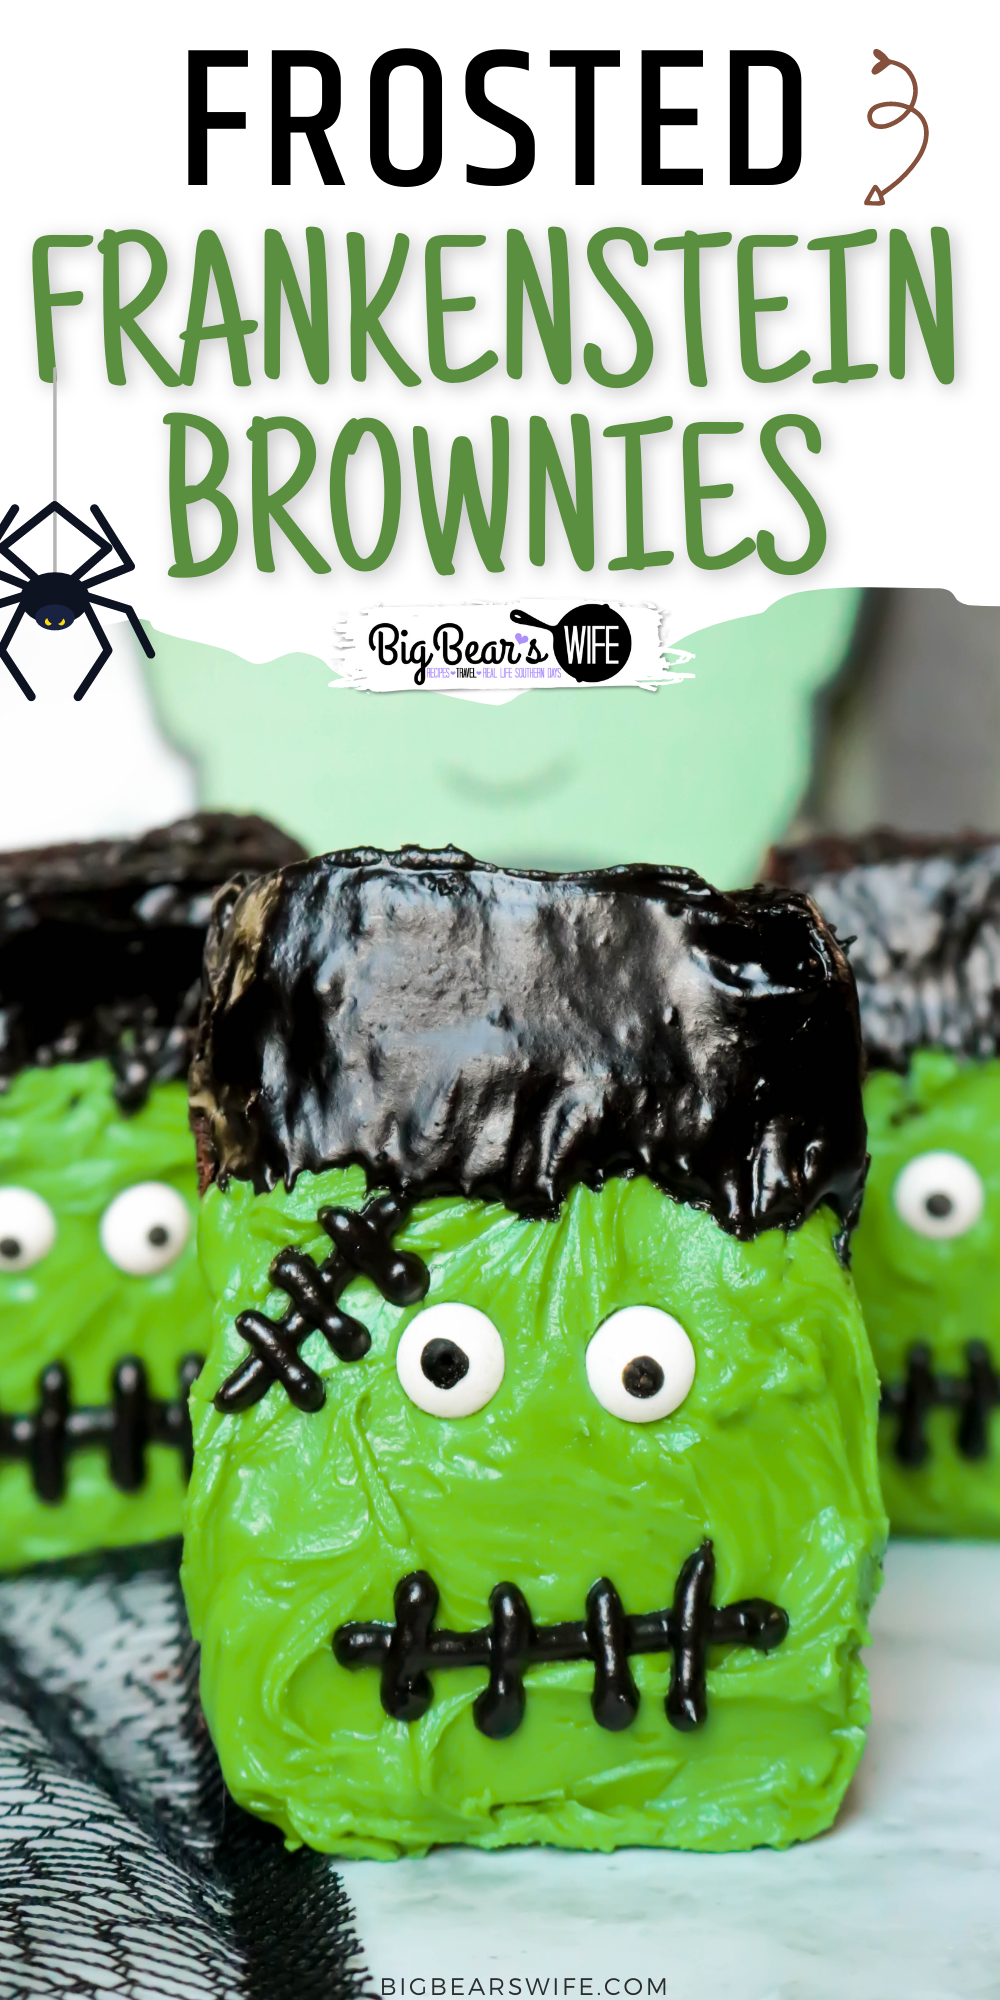 Frosted Frankenstein Brownies are perfect for boxed brownie or homemade brownies with my favorite brownie recipe. Use a bit of frosting and candy eyes to turn brownies into the cutest Halloween brownies.  via @bigbearswife